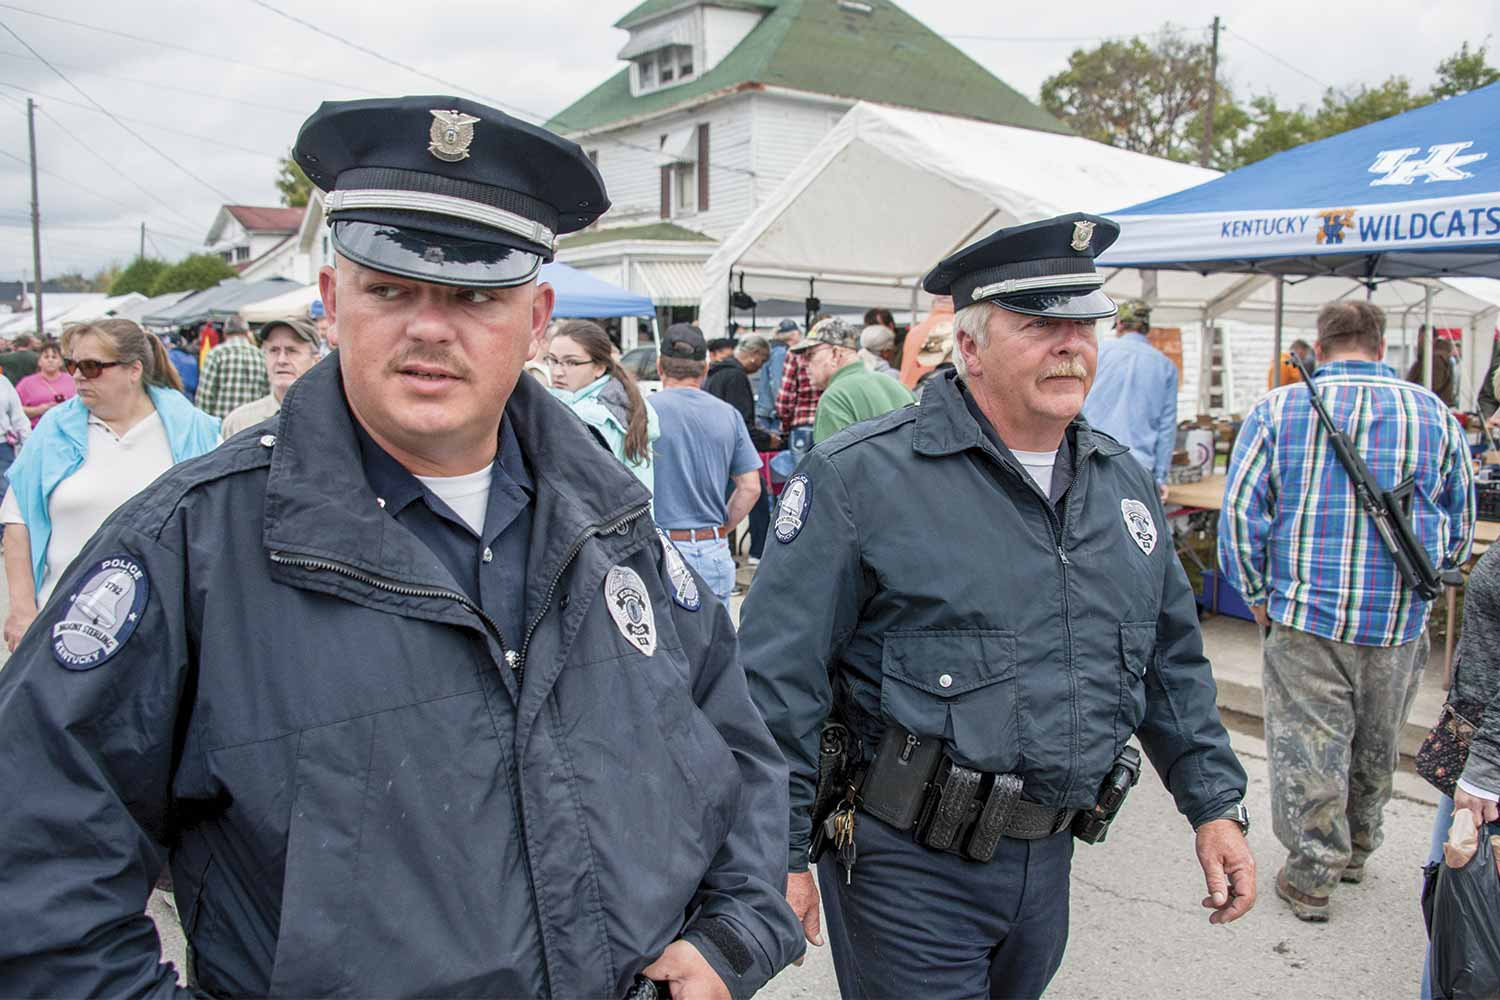 MSPD officers are required to work 12-hour shifts during Mount Sterling's Court Days Festival. The festival draws approximately 200,000 people to the community over the course of four days. Last year MSPD handled 298 complaints relating to the festival. (Photo by Jim Robertson)